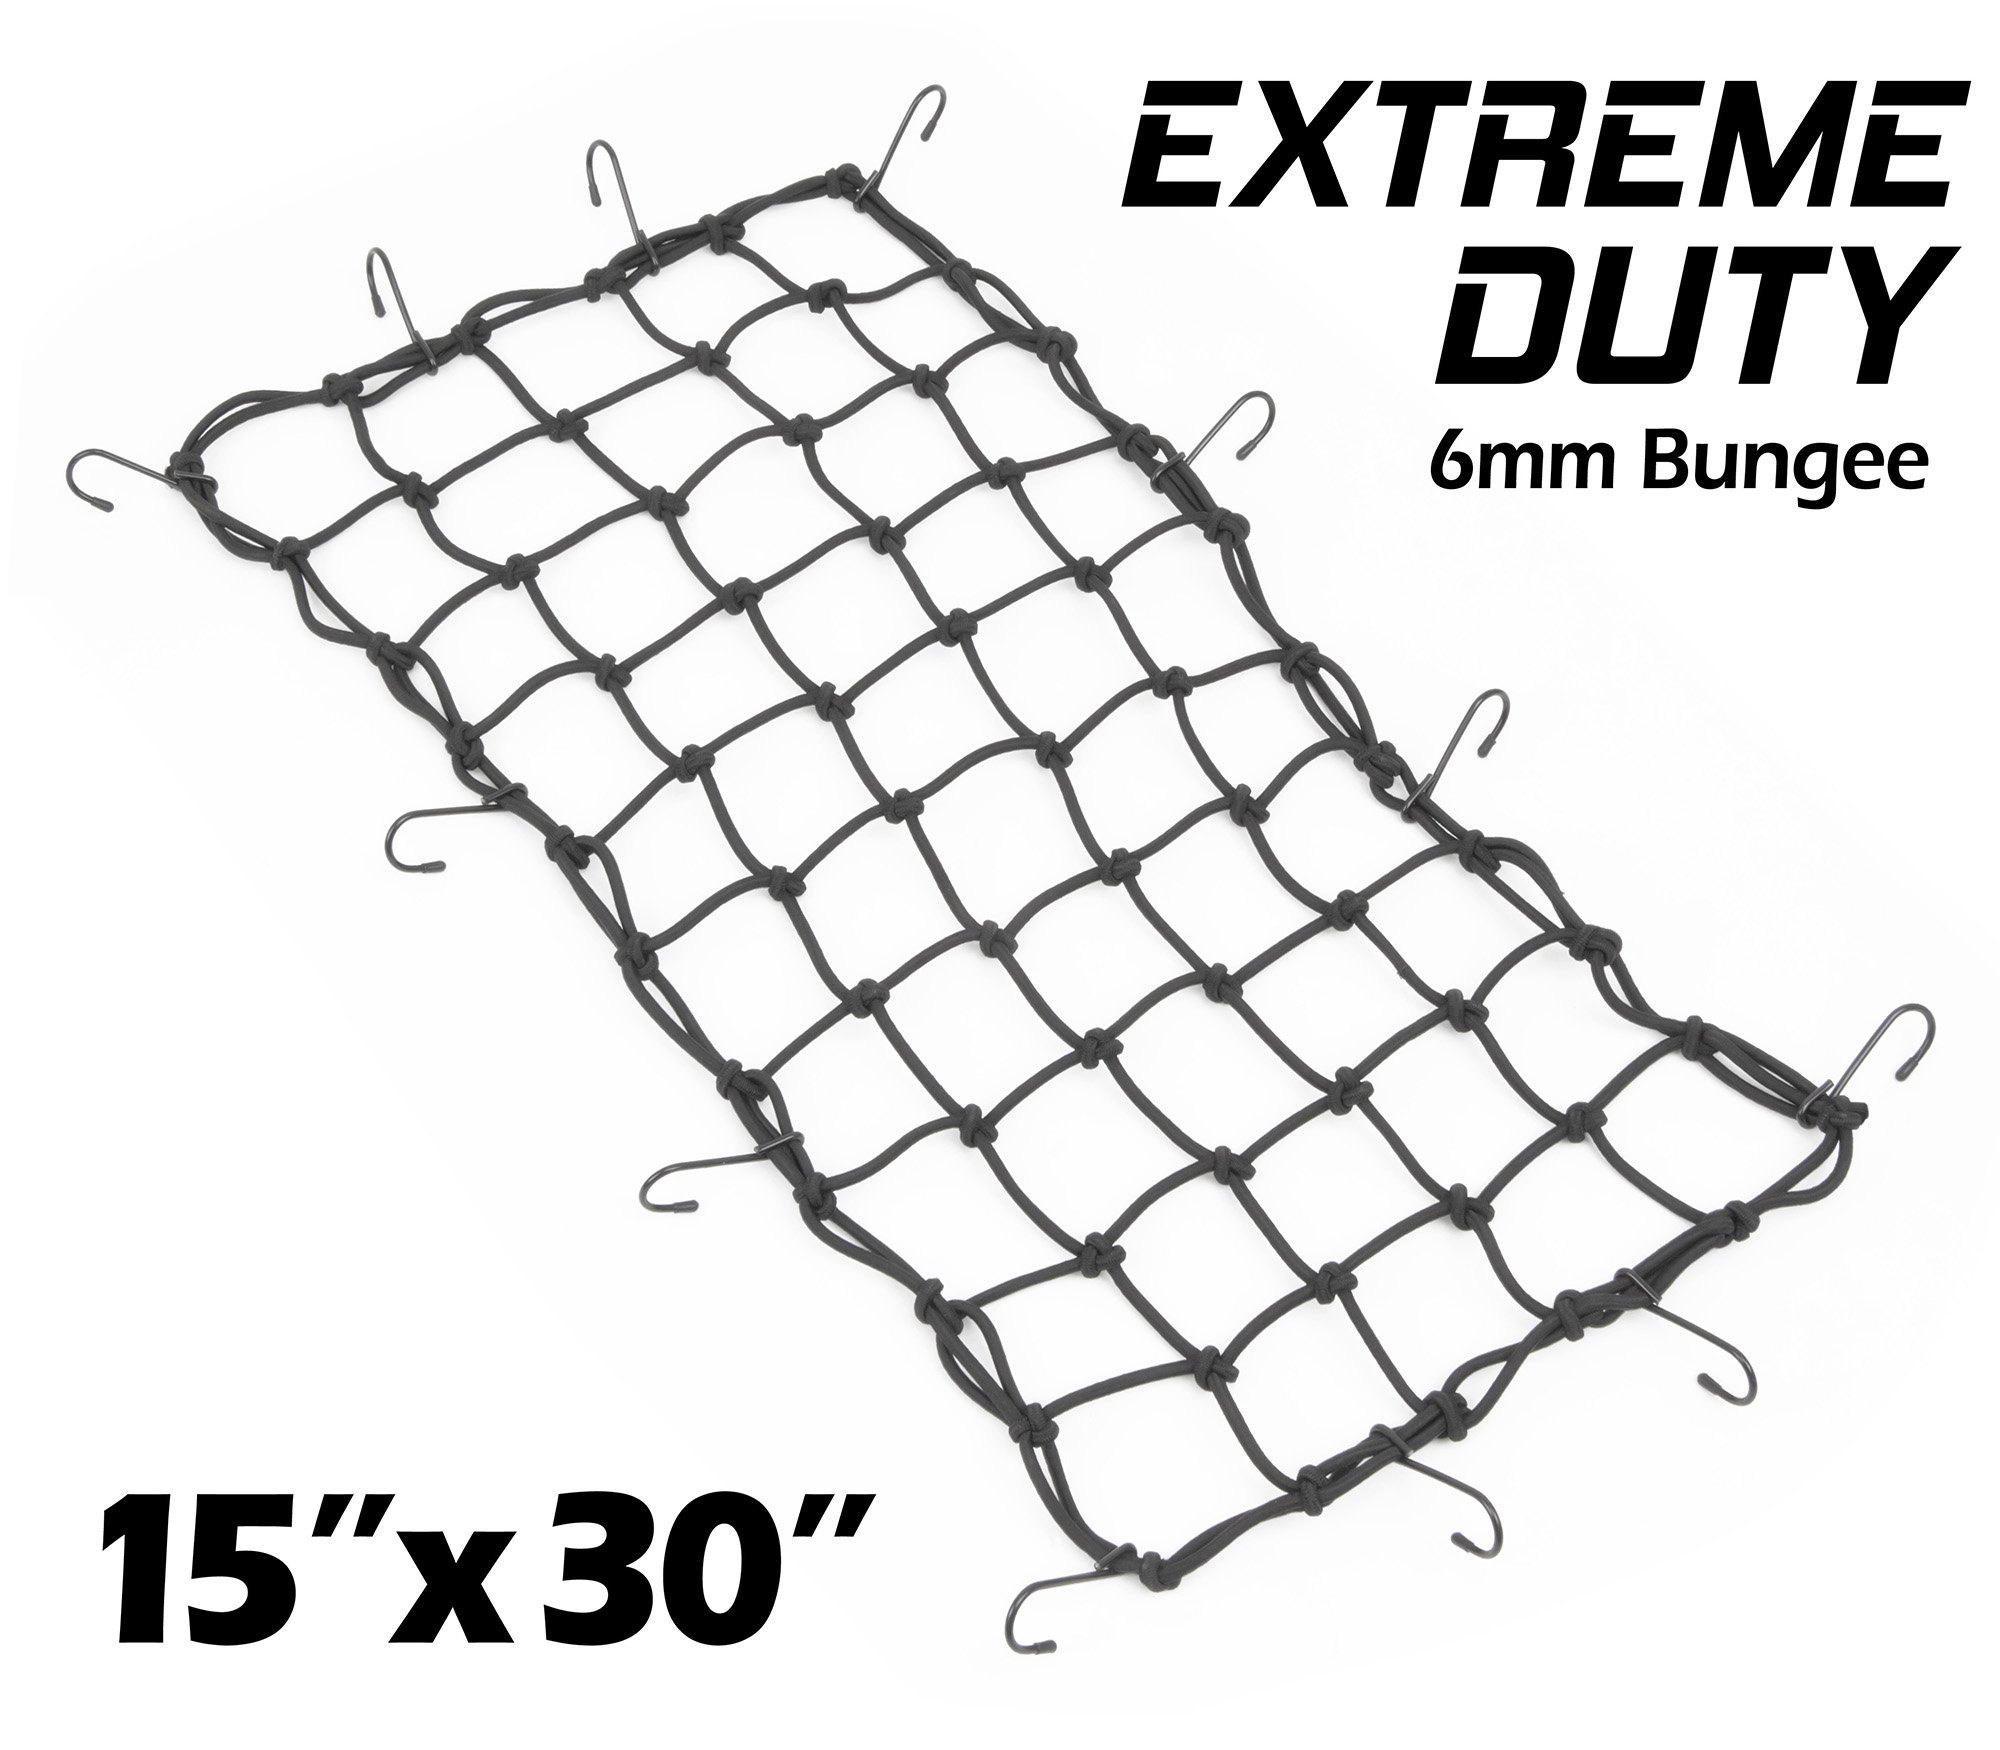 3x3 Mesh and Rubber-Tipped Super Strong Metal Hooks Allpdesky 2 Pack 15x15 Mfg Cargo Net Made with Premium Latex Bungee Material Black